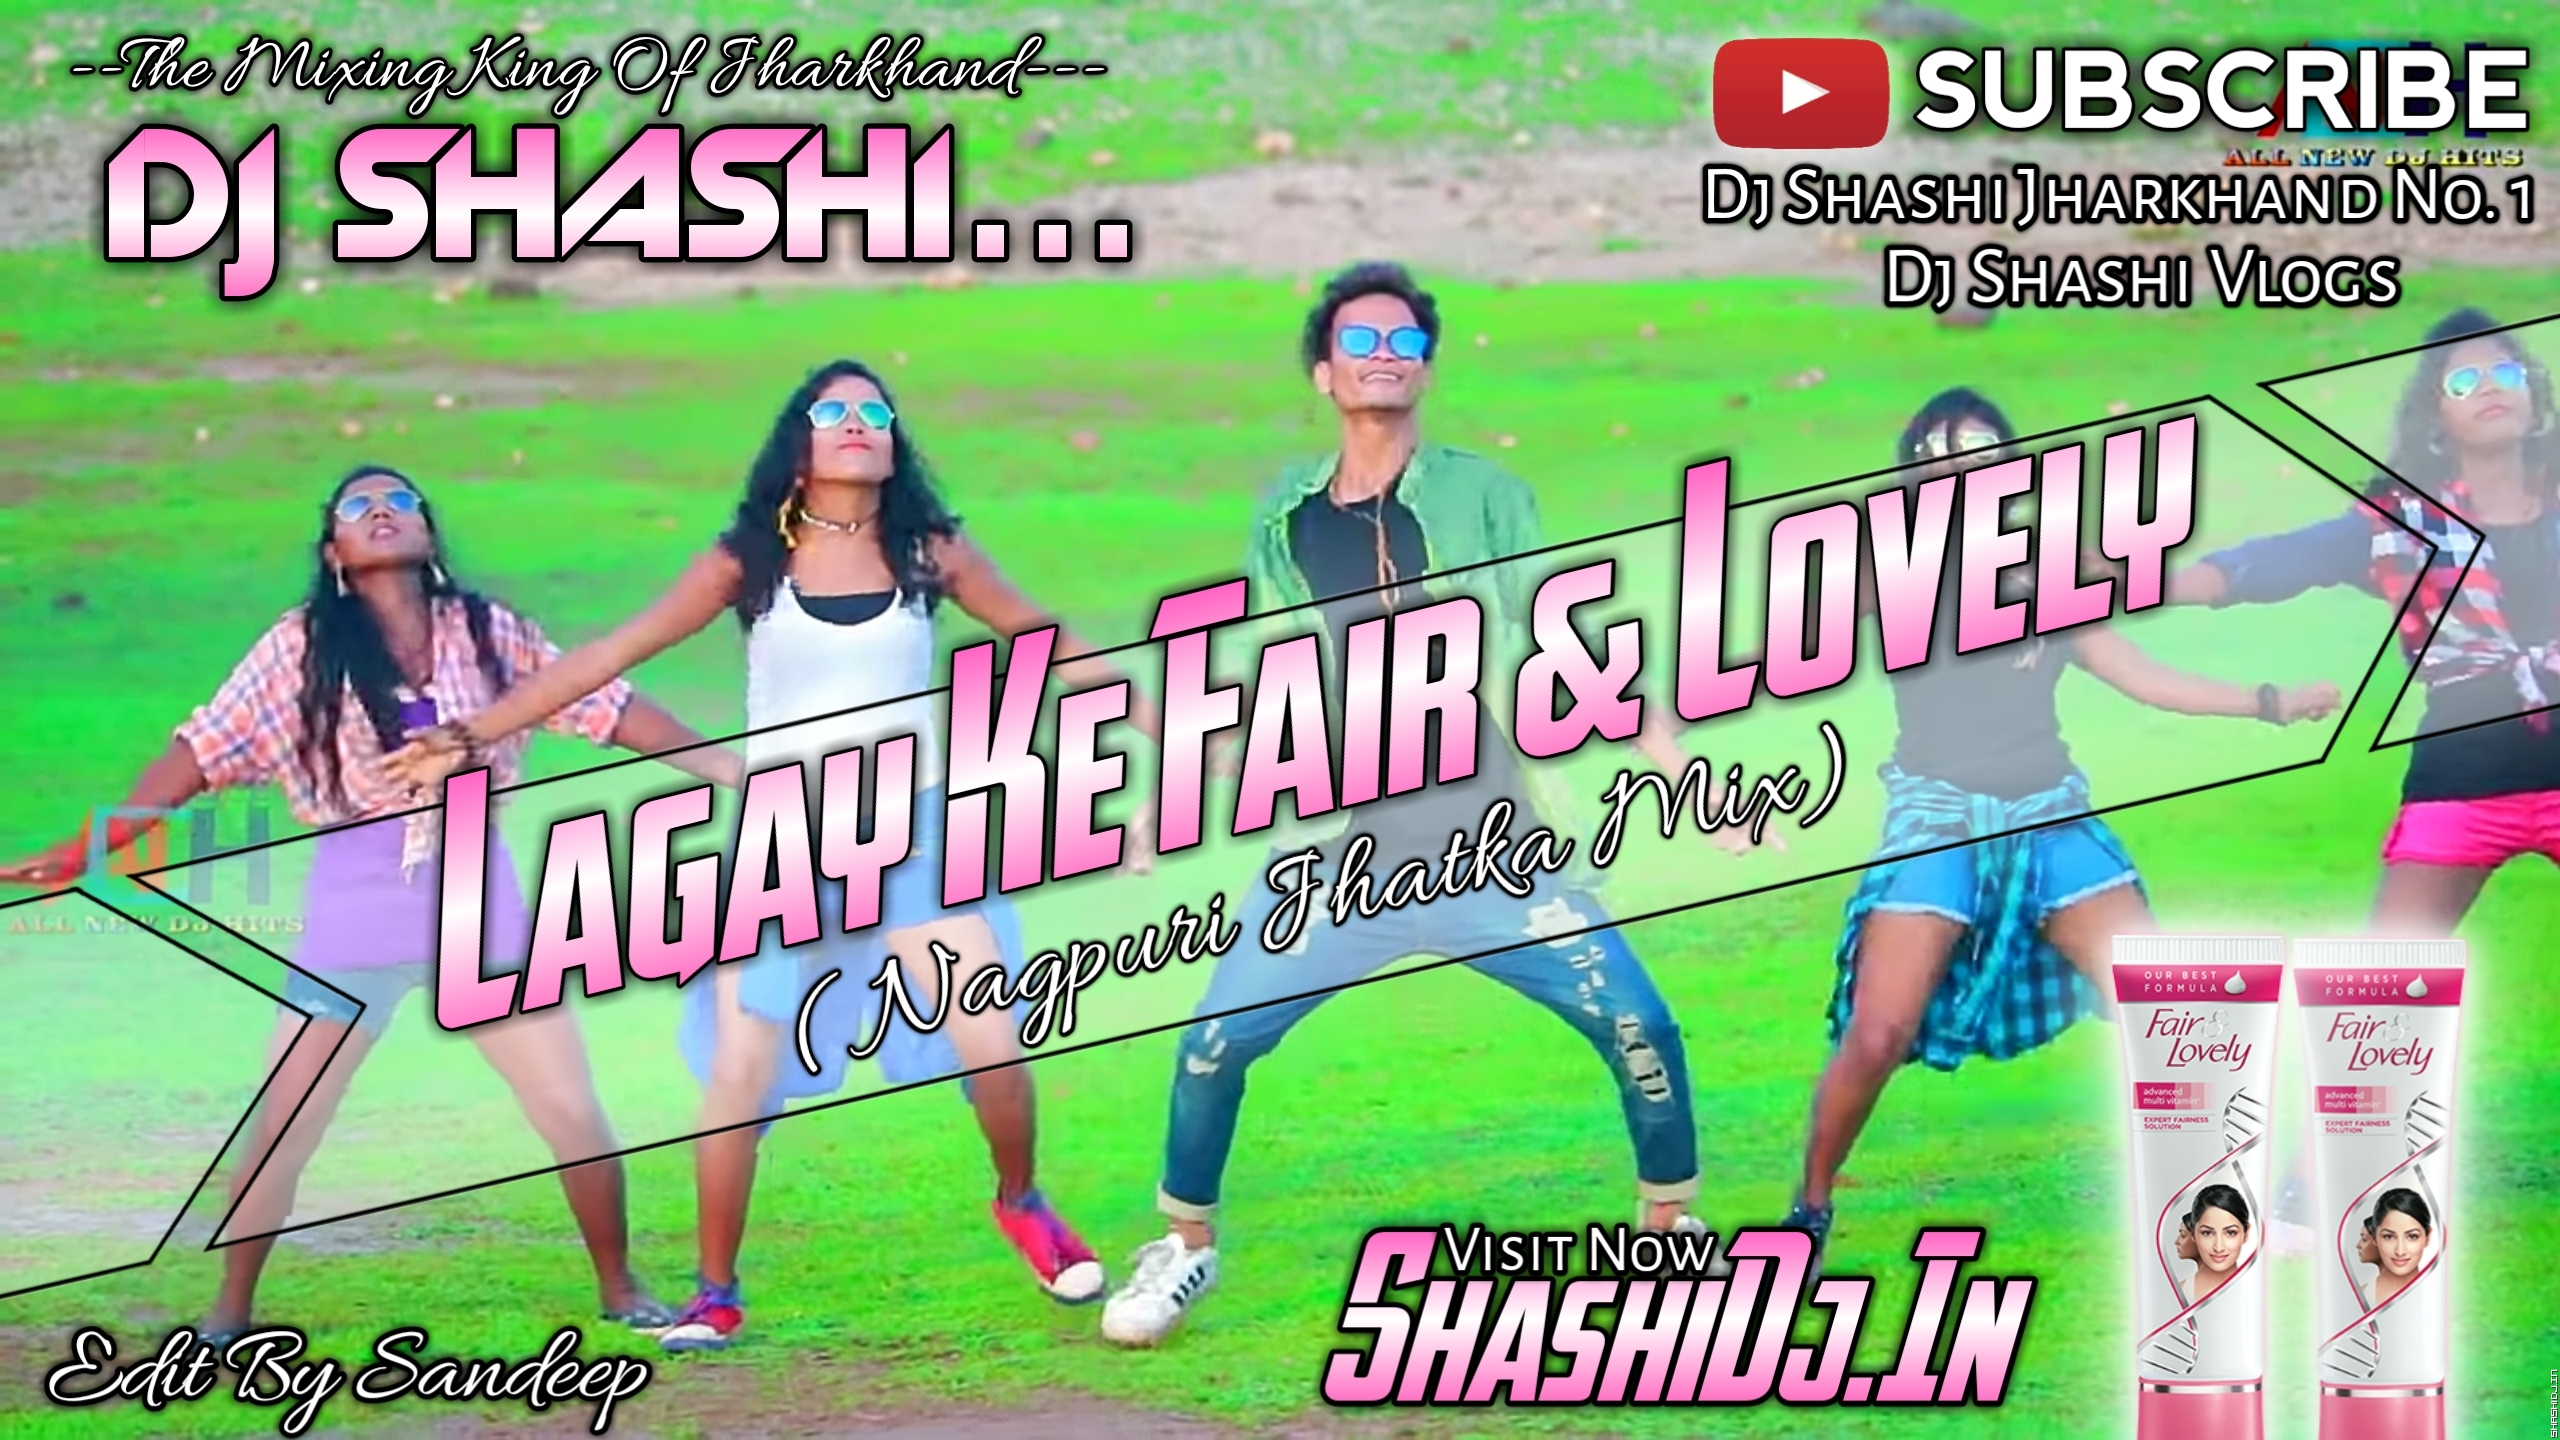 Lagay Ke Fair&Lovely Nagpuri Jhatka Mix By Dj Shashi.mp3